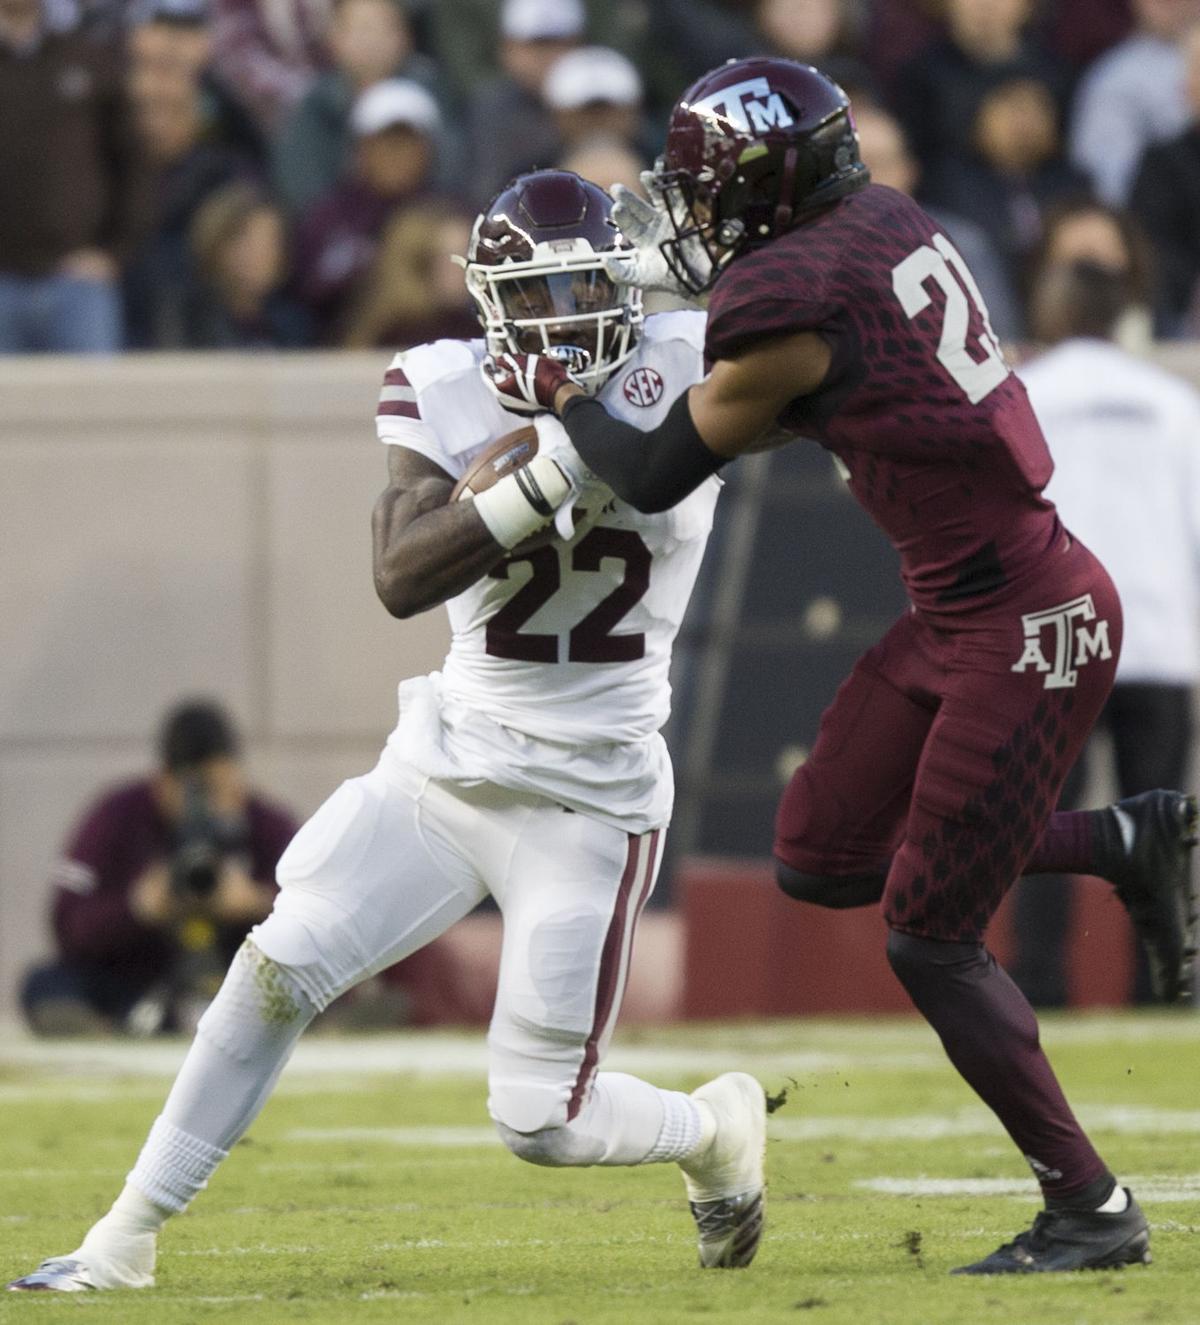 Mississippi St  winning again with defense, run game